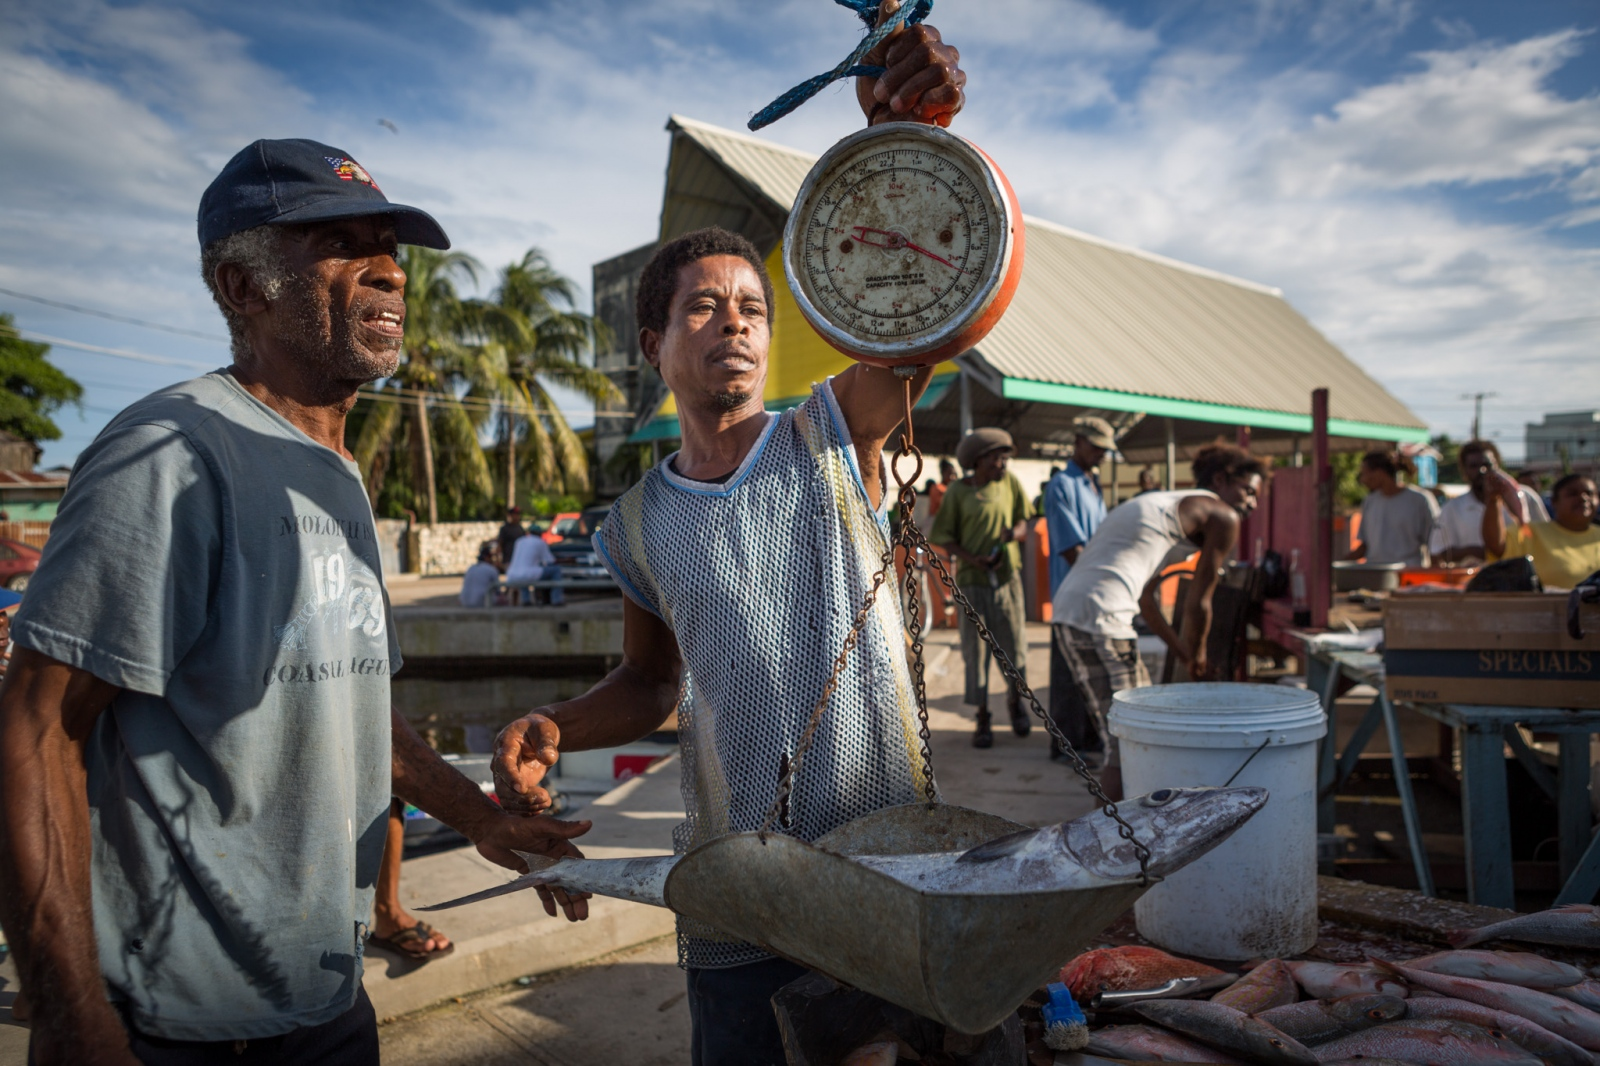 Art and Documentary Photography - Loading Fisheries008.jpg